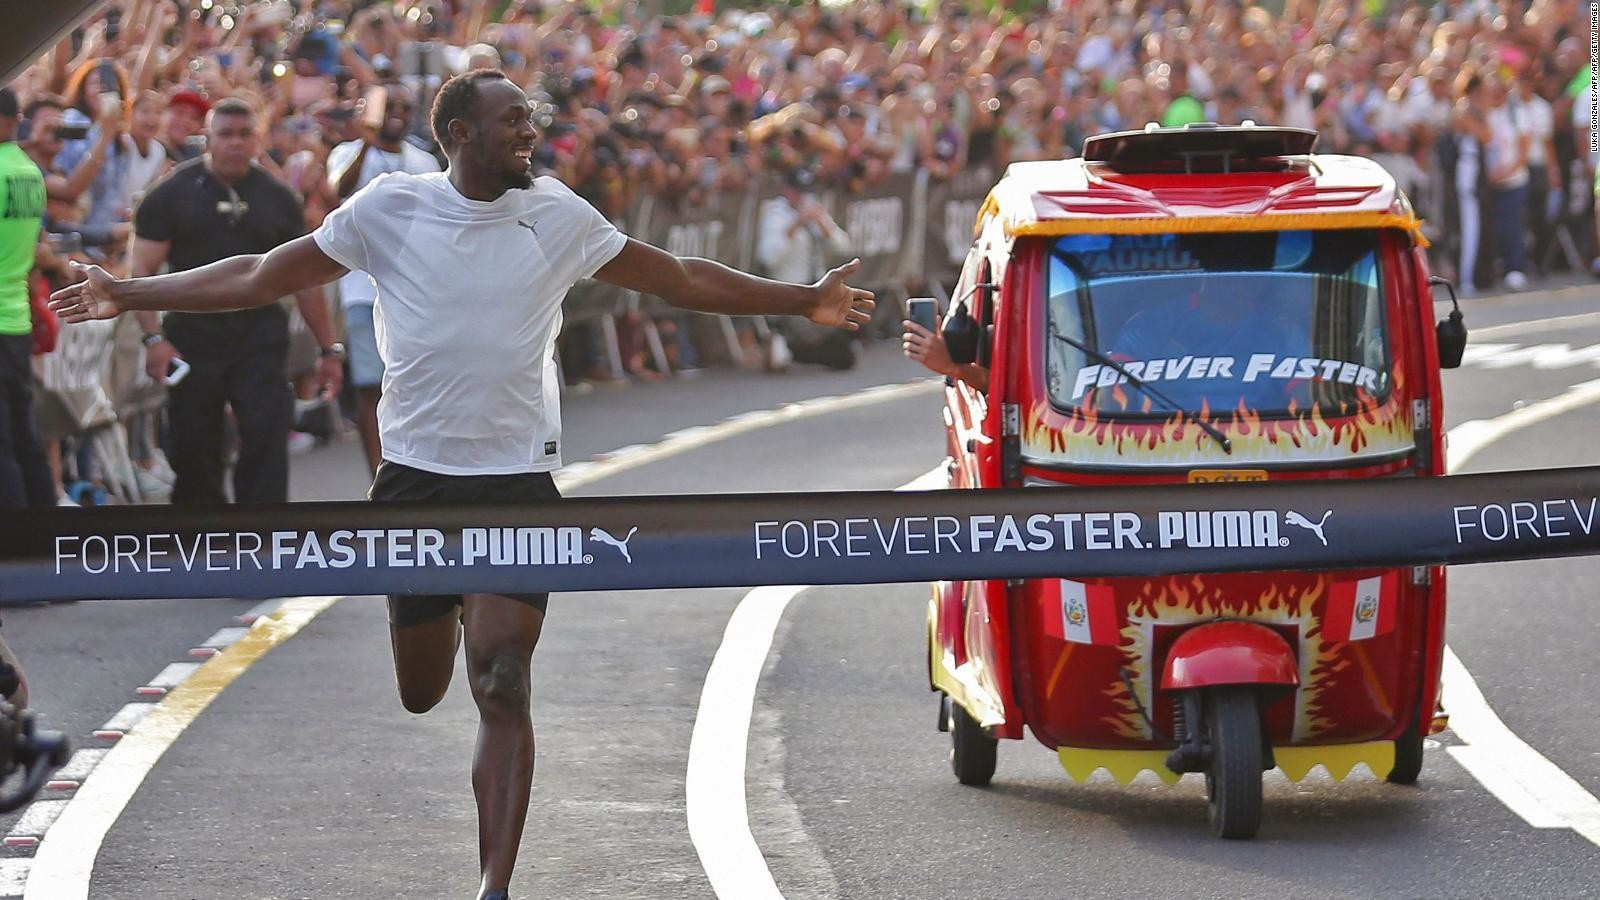 Eight-time Olympic gold medallist Usain Bolt competed against a tuk-tuk in the Peruvian capital Lima on Tuesday, and won